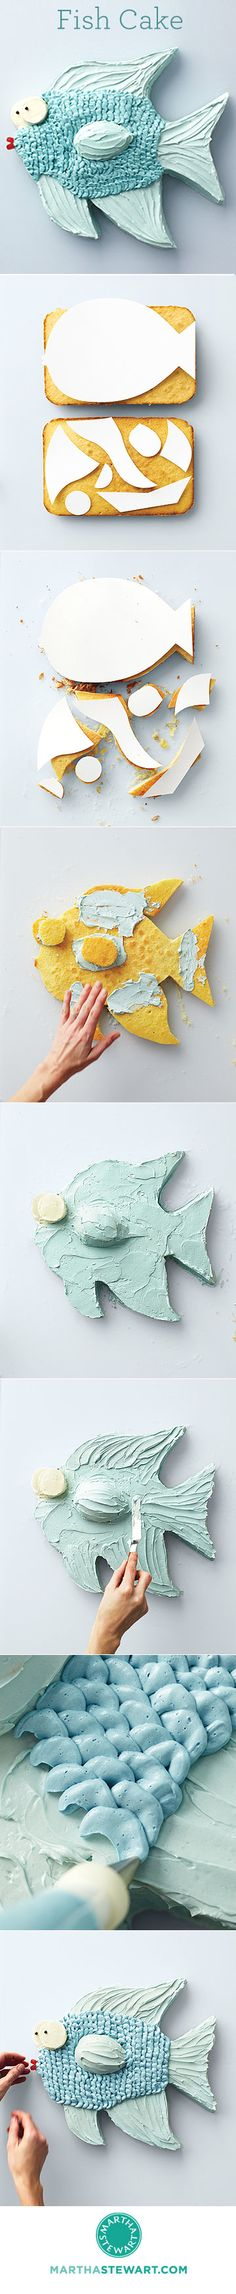 Cute Fish Cake How-To. I love this but I guarantee that it's not as easy as it looks!